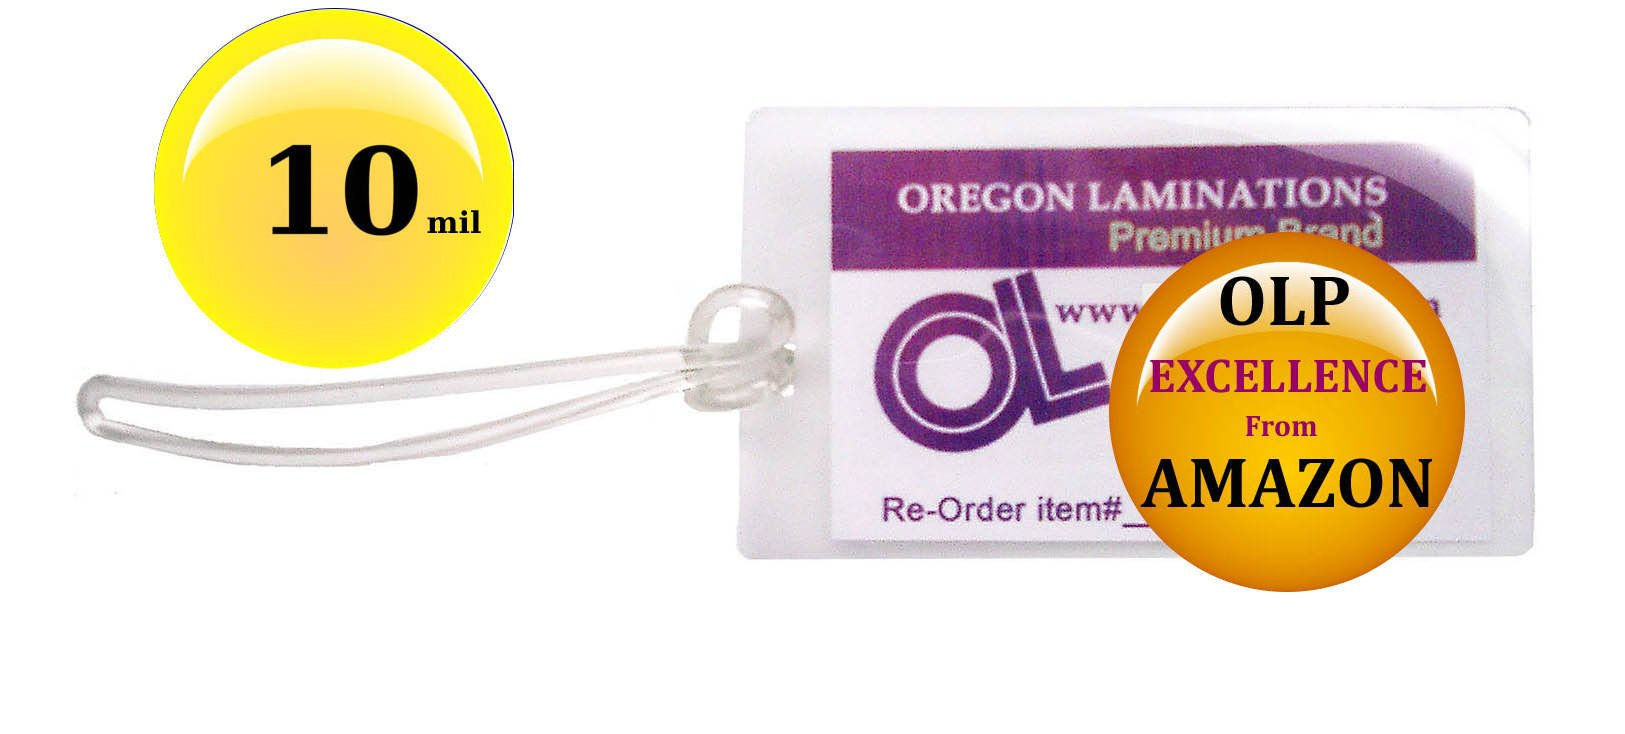 Qty 500 of Each, 10 Mil Luggage Tags Laminating Pouches with 6-inch Loops, 2-1/2 x 4-1/4 pre-Slotted